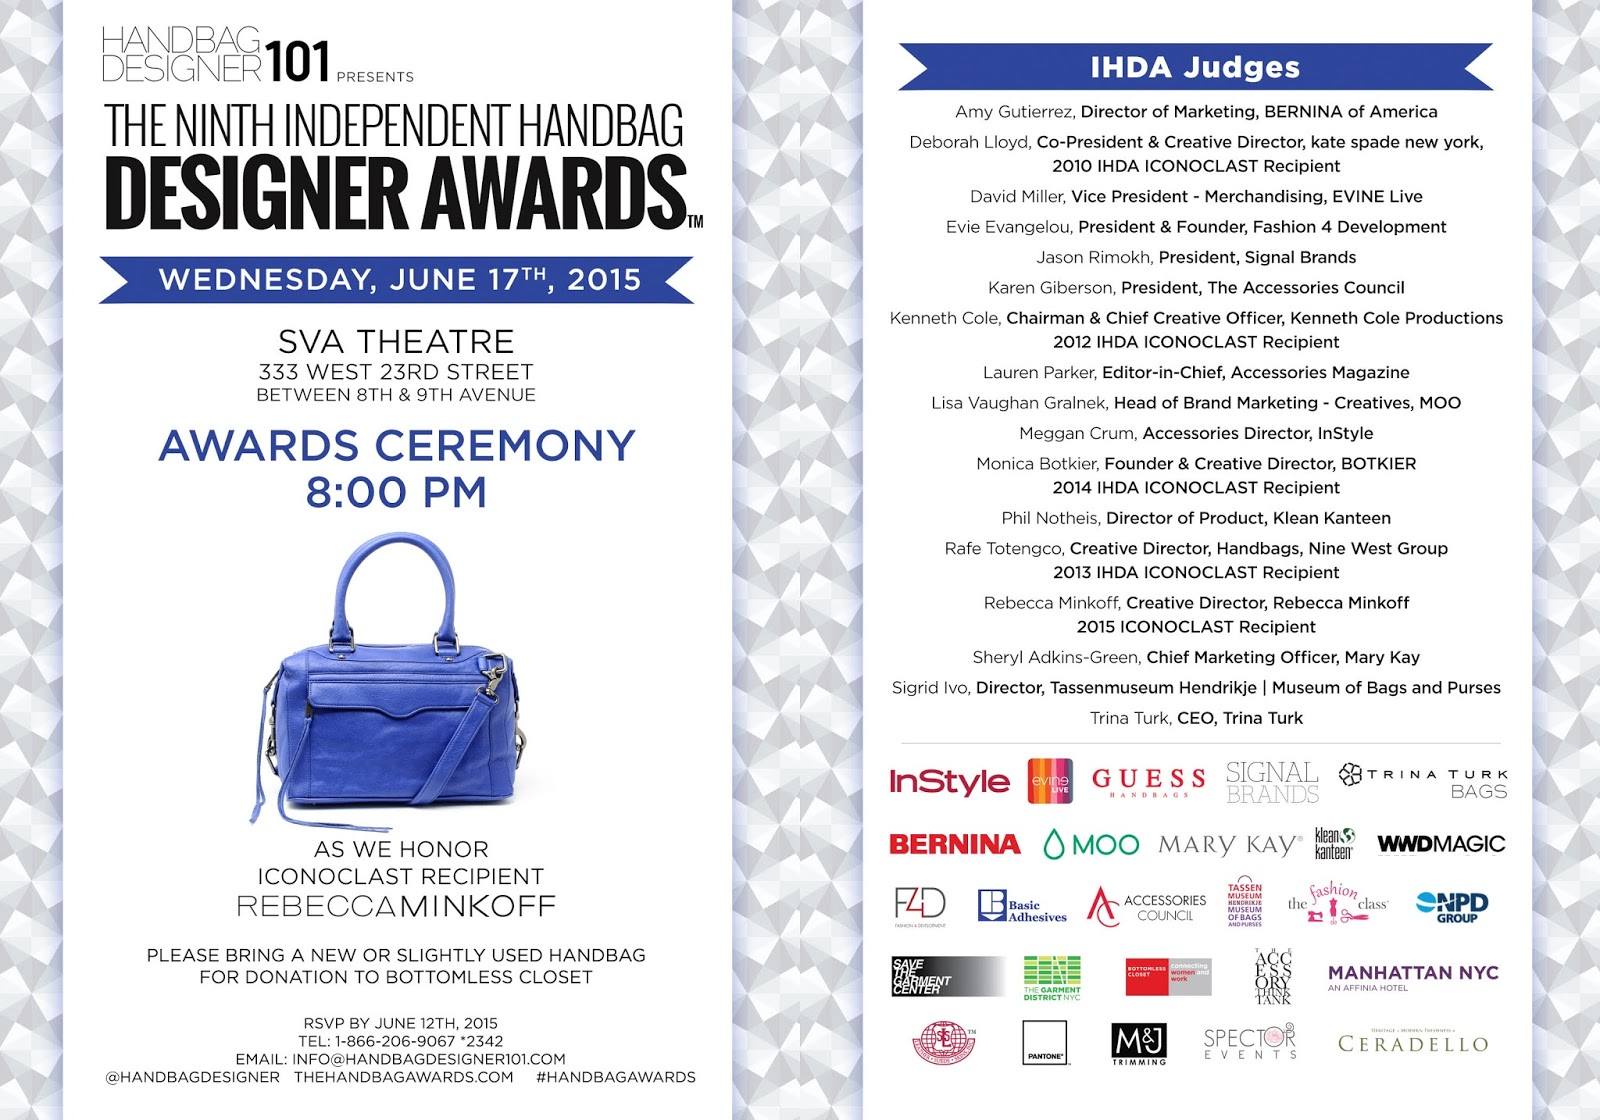 Latest In Innovative Handbag Styles Get Yourself To The 9th Annual Independent Designer Awards On Wednesday June 17th At 8pm Sva Theatre